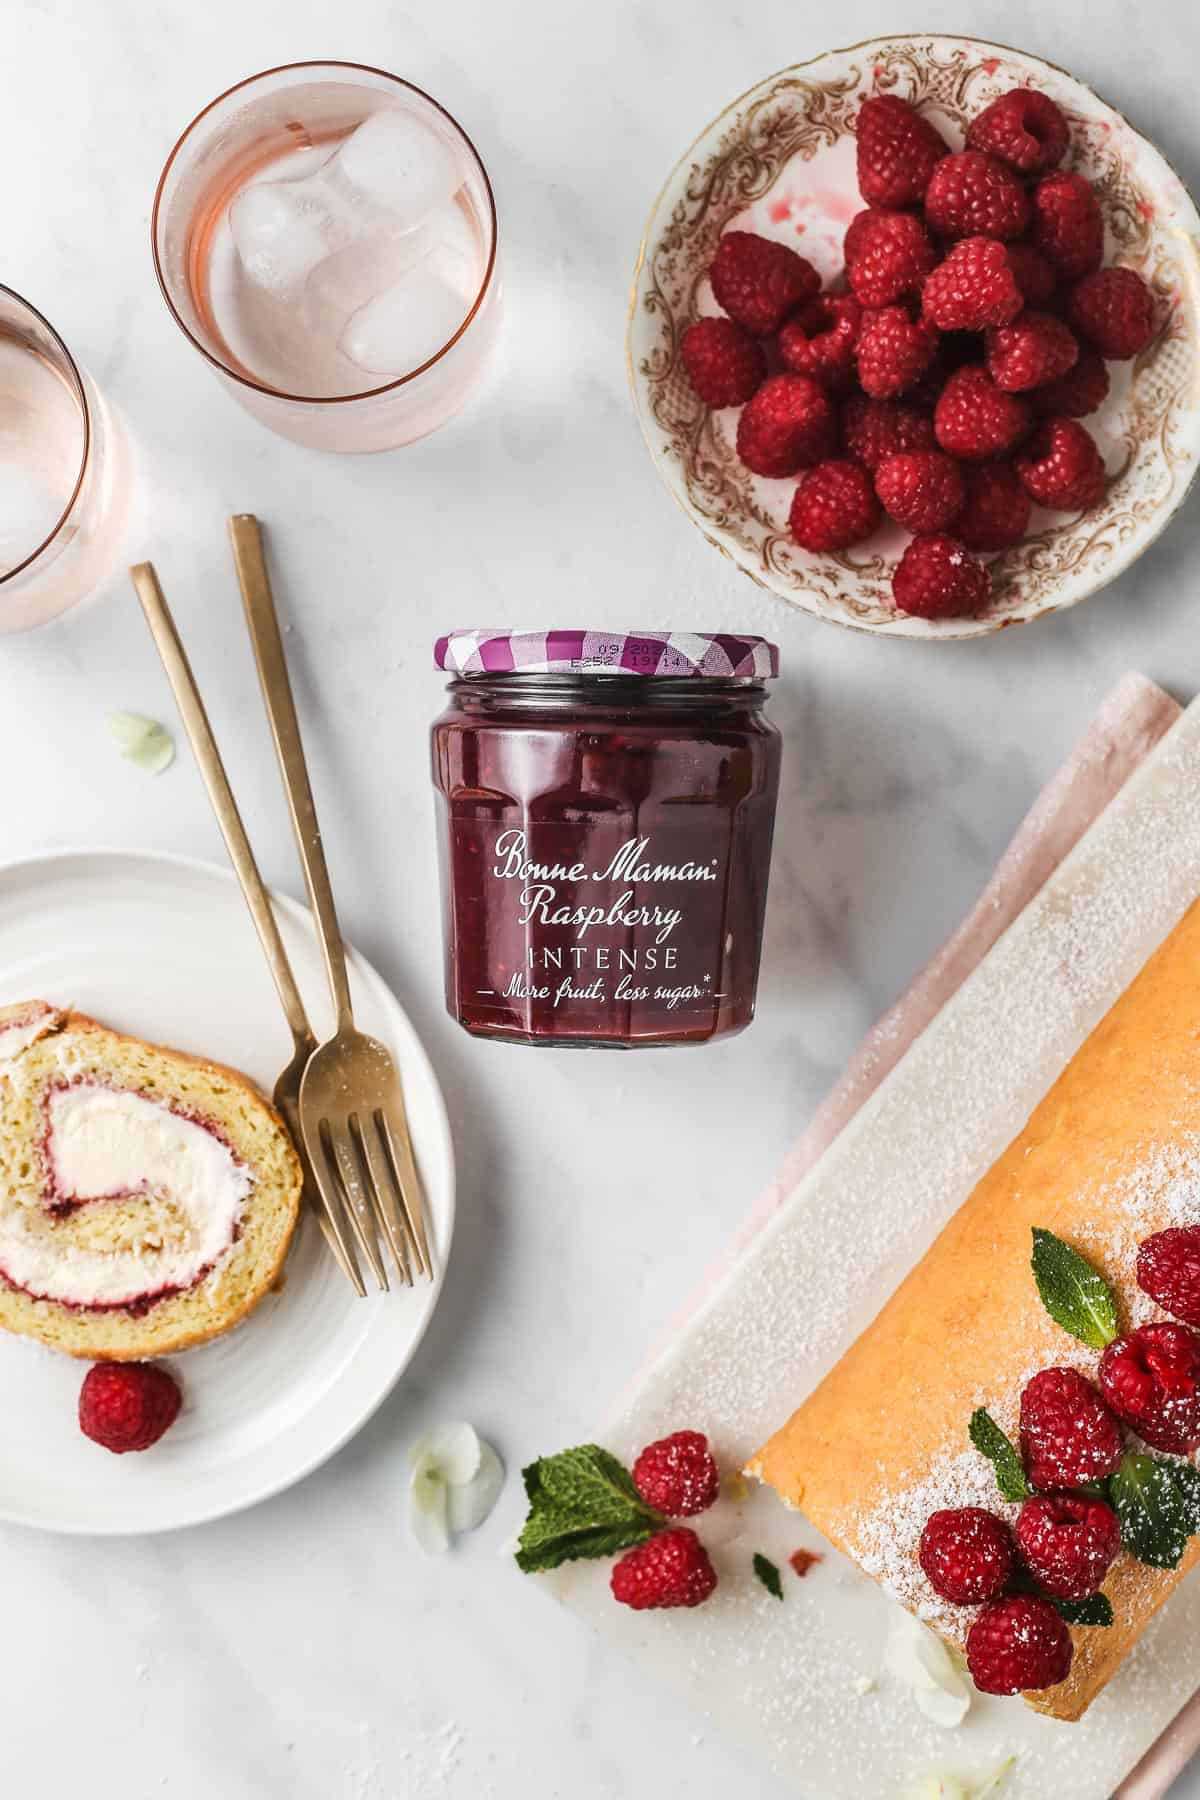 Bonne Maman Raspberry Intense Jam used as a filling in Swiss Roll